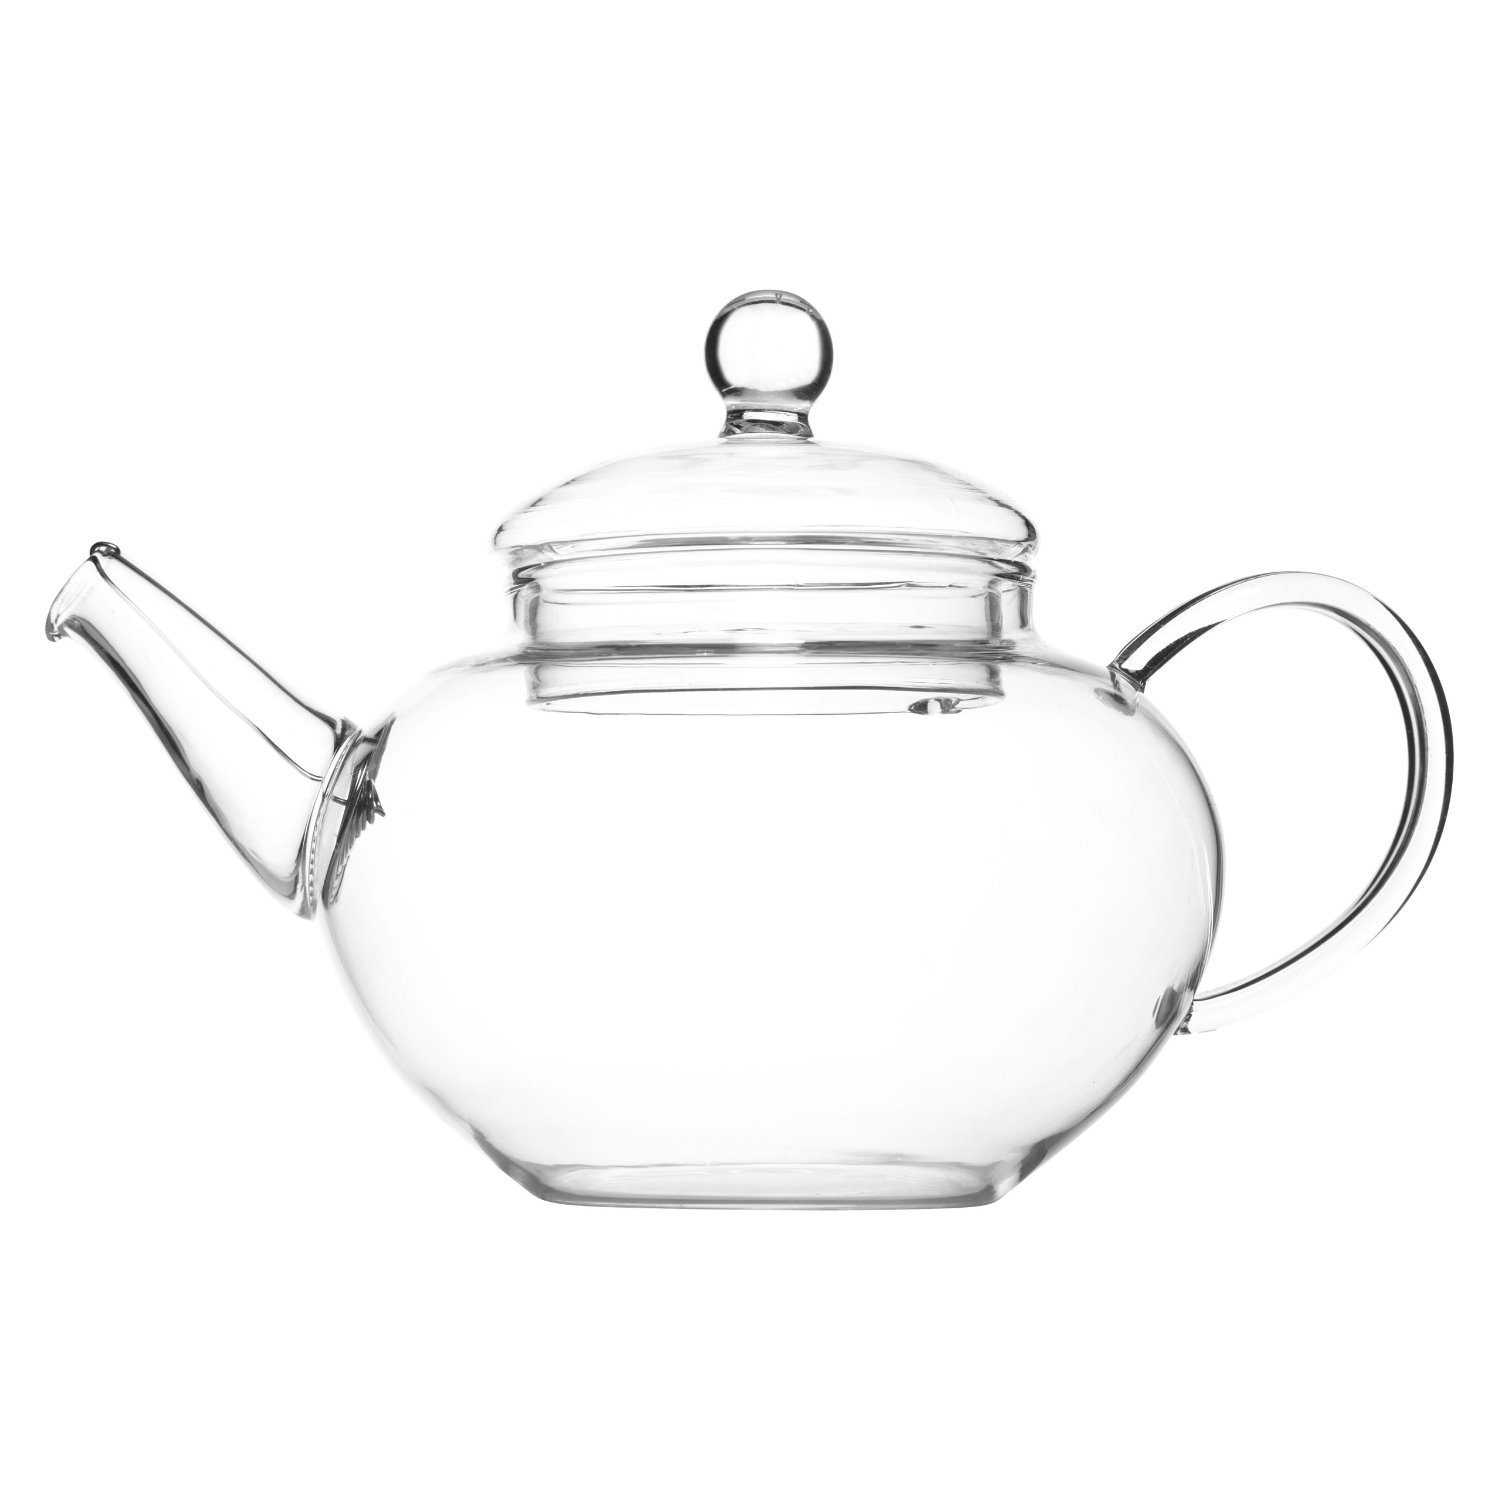 Glass Teapot & Wire Coil Filter - Devonshire - 350ml (For 1 Cup) - Chiswick Tea Co